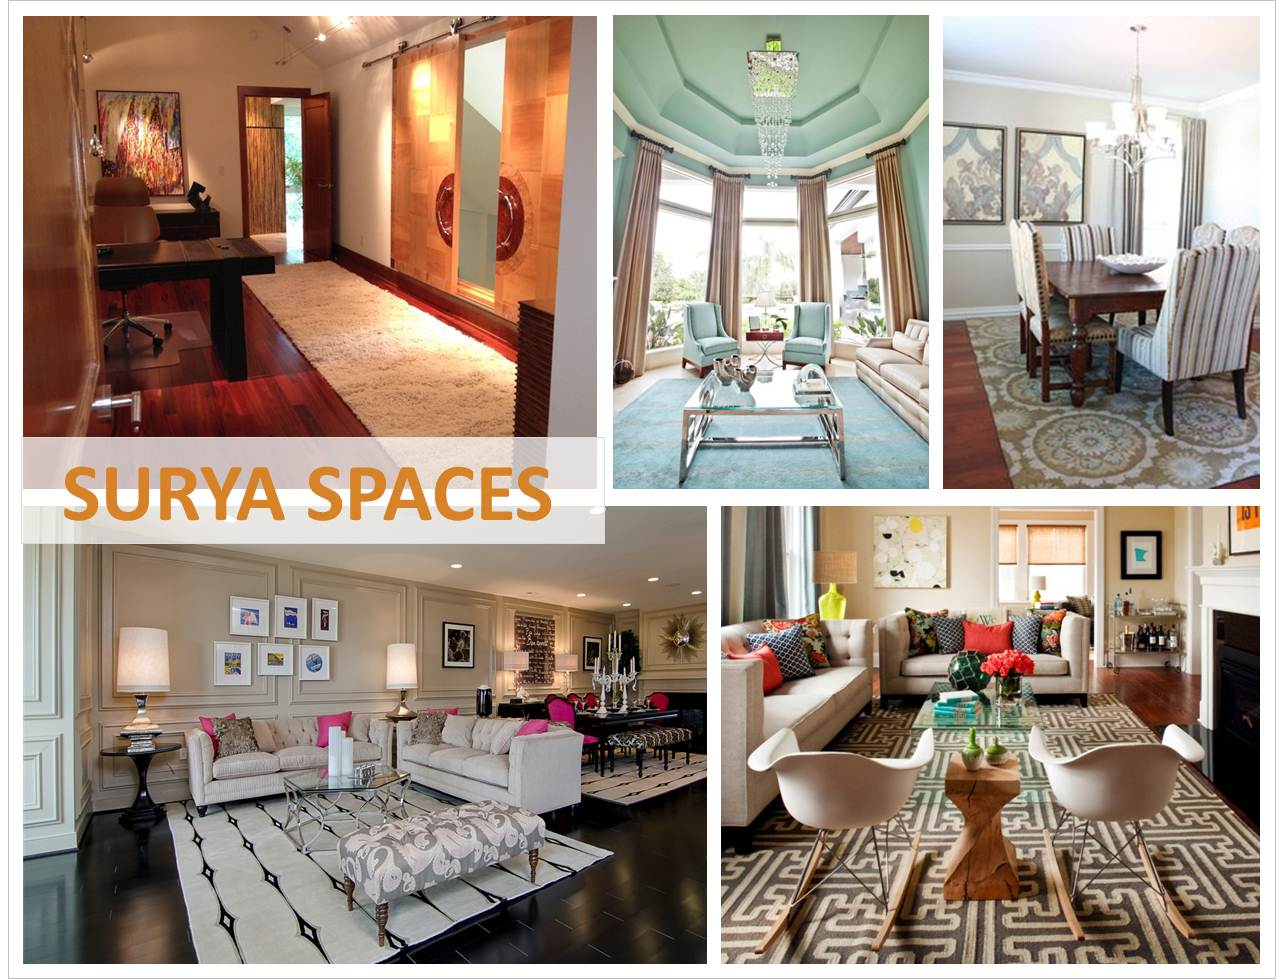 Interior design society online portfolio enter the surya for Interior design association